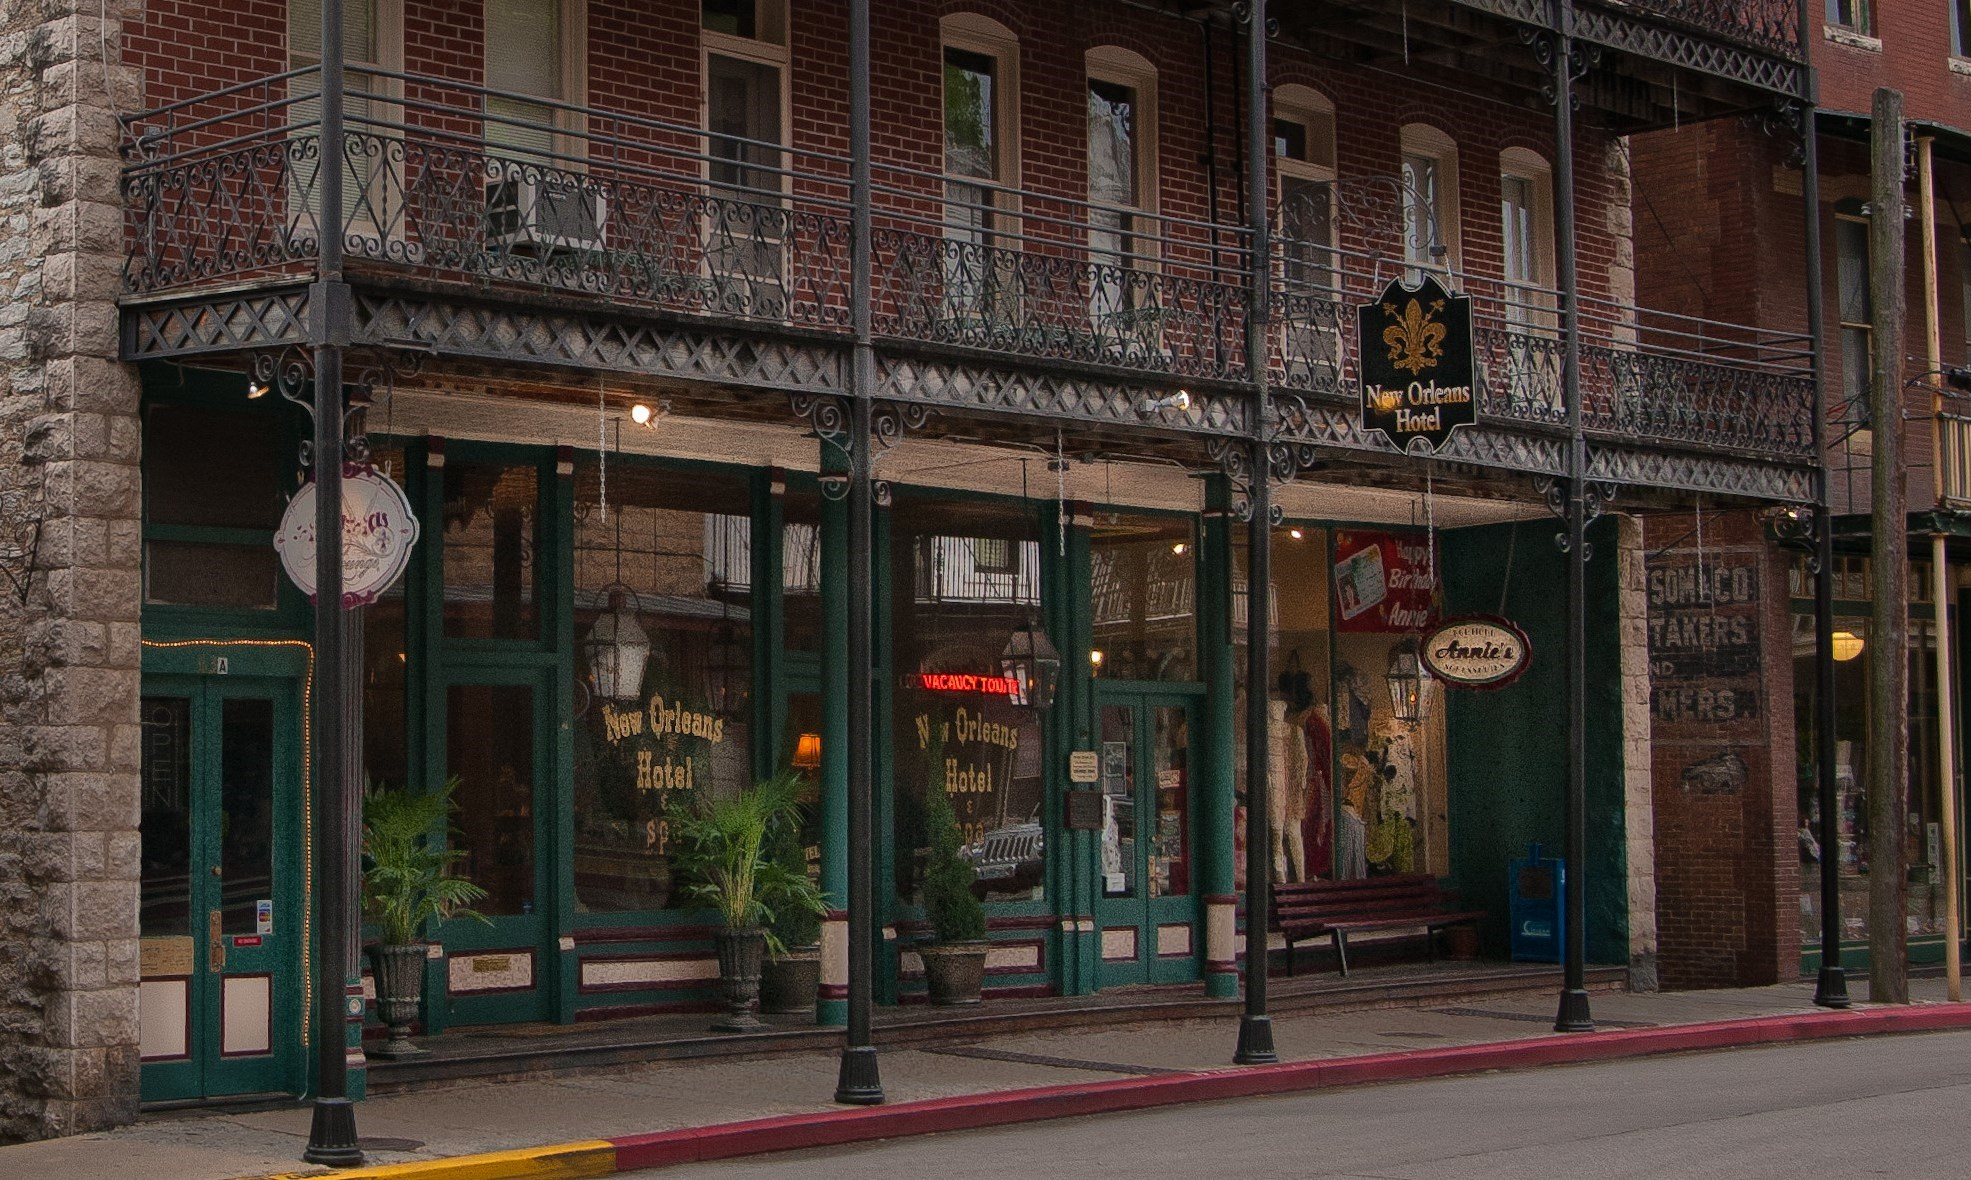 New Orleans Hotel - Events in Eureka Springs